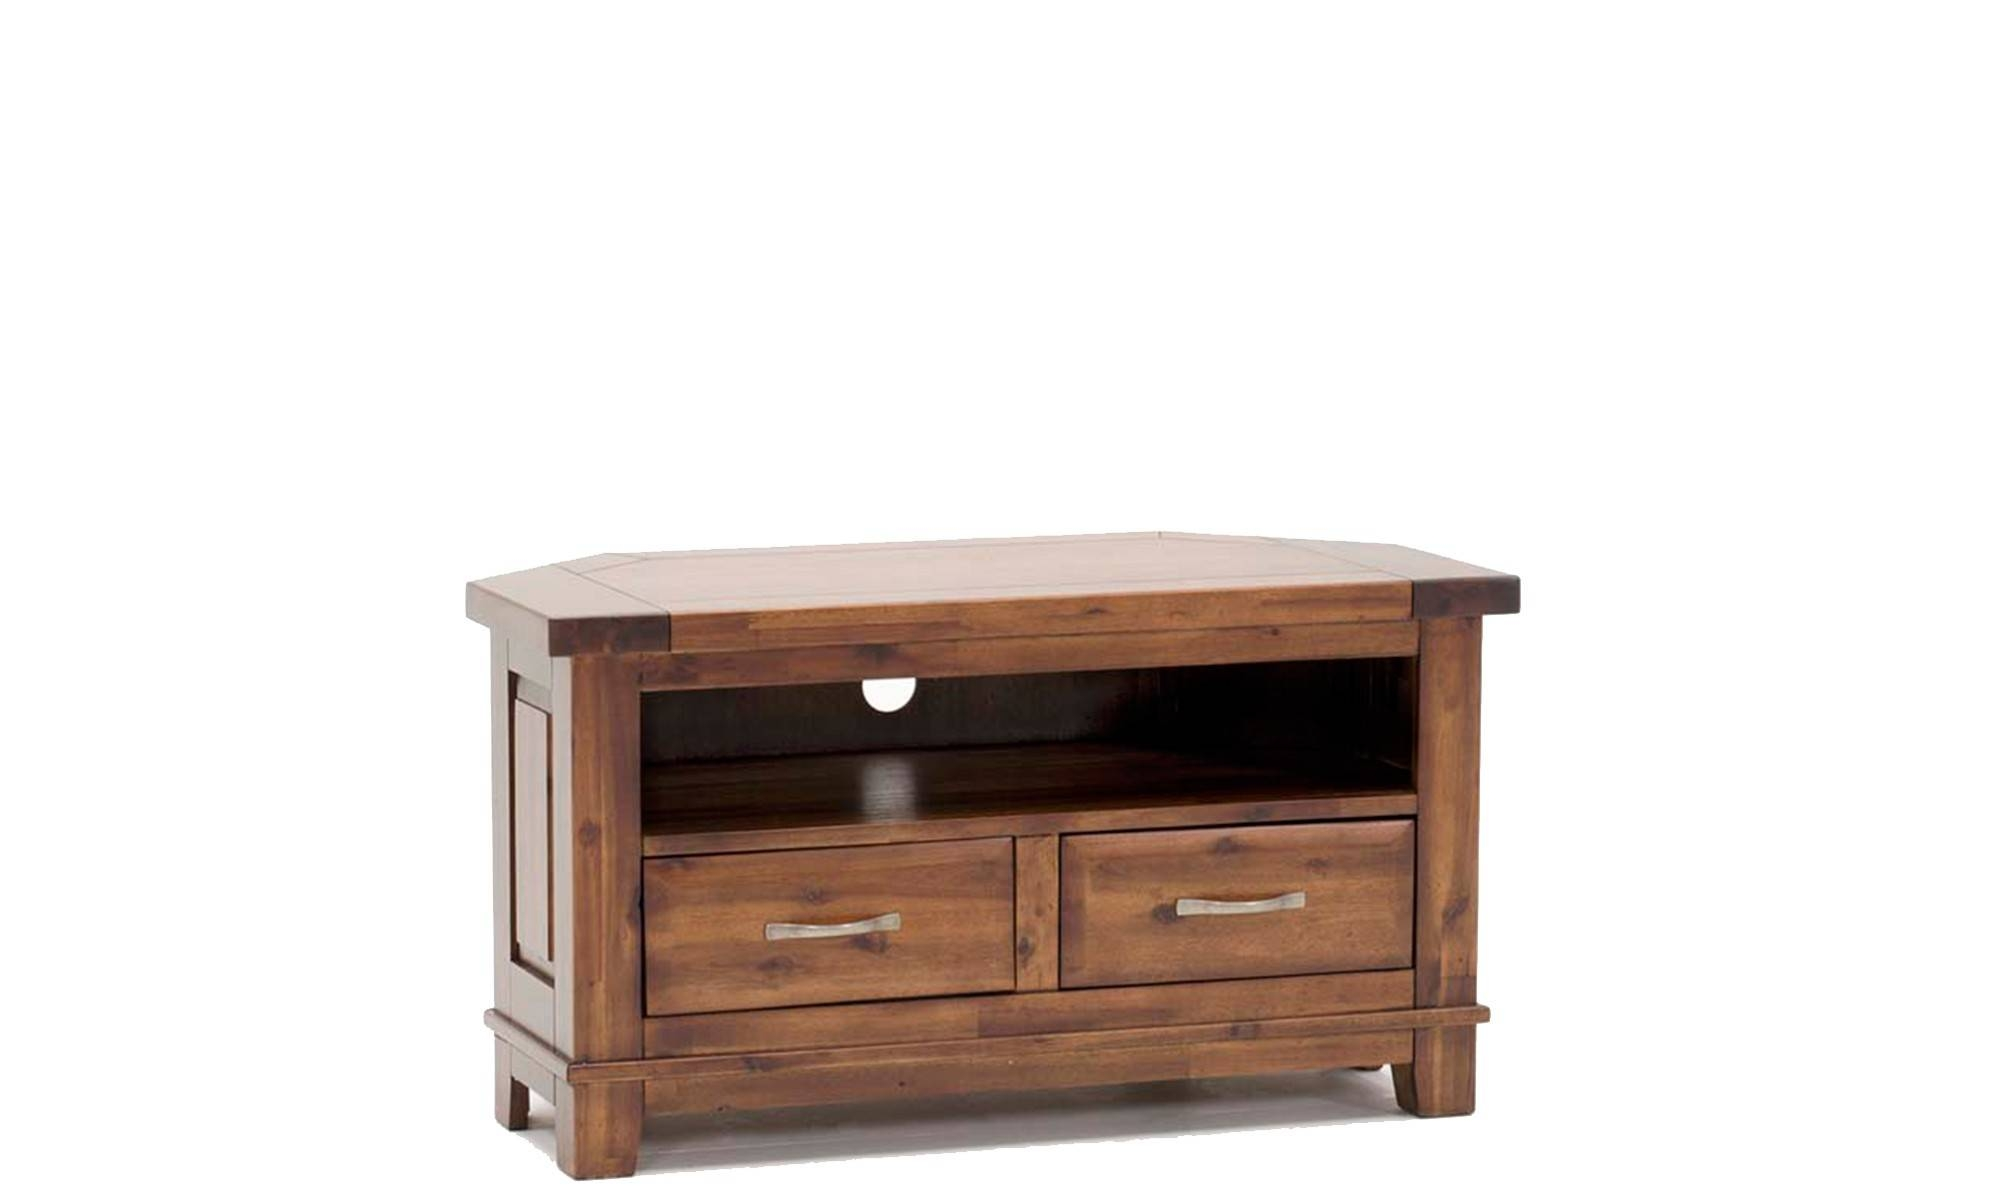 Brockton - Corner Tv Stand - Fishpools throughout Emerson Tv Stands (Image 4 of 15)